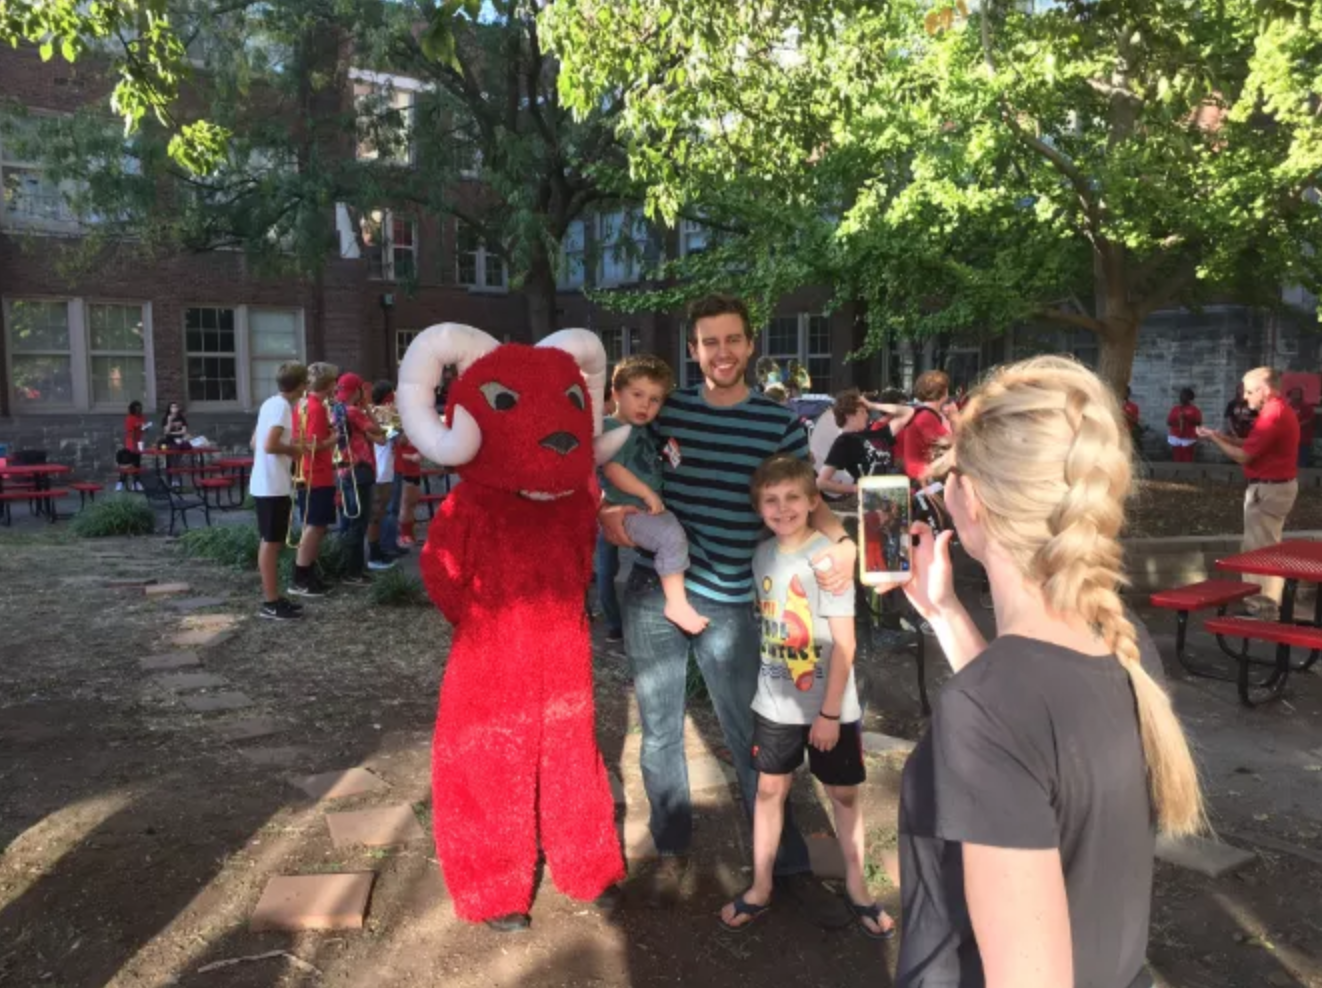 Family takes a photo with Rammy, the mascot, at the festival. Photo by Reece Gunther.